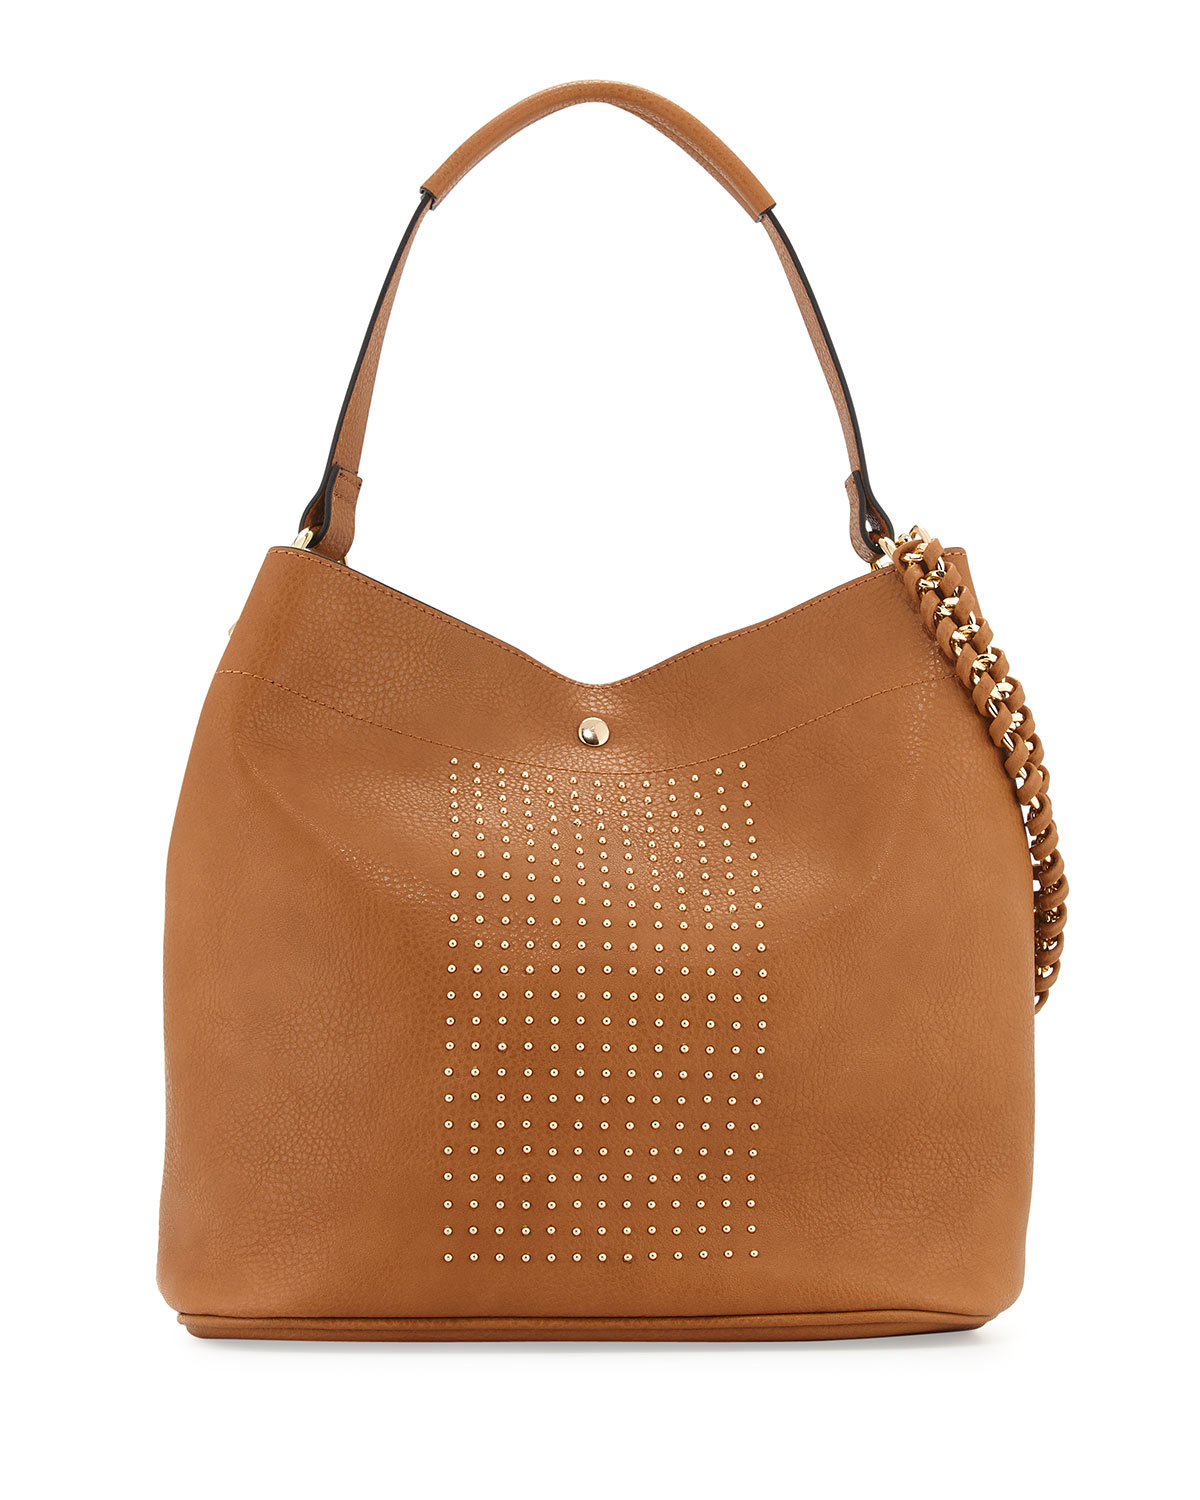 Neiman marcus Sophia Studded Faux-leather Hobo Bag in Brown | Lyst